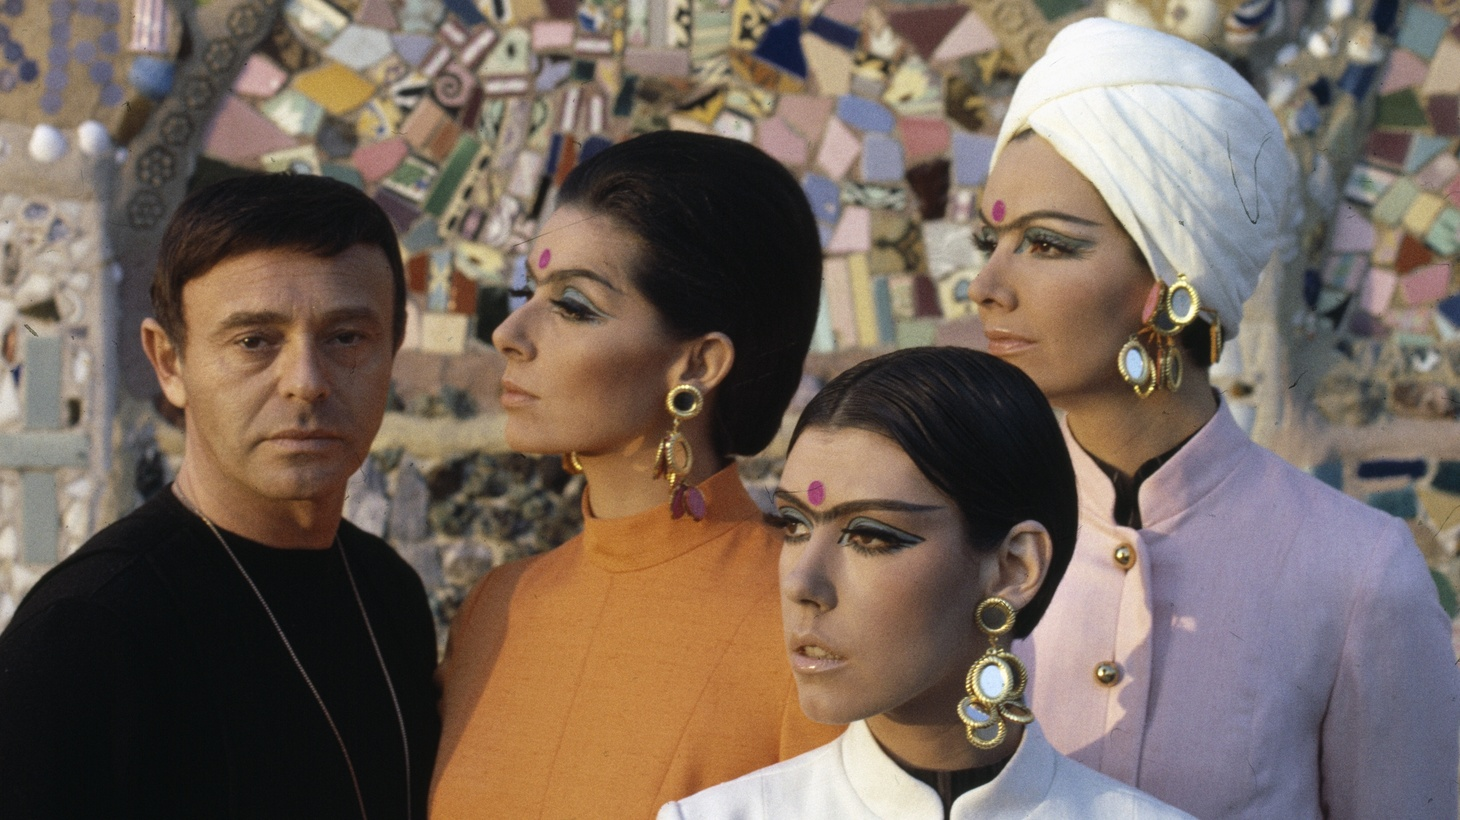 Rudi Gernreich with models wearing his designs in front of Watts Towers, c. 1965.